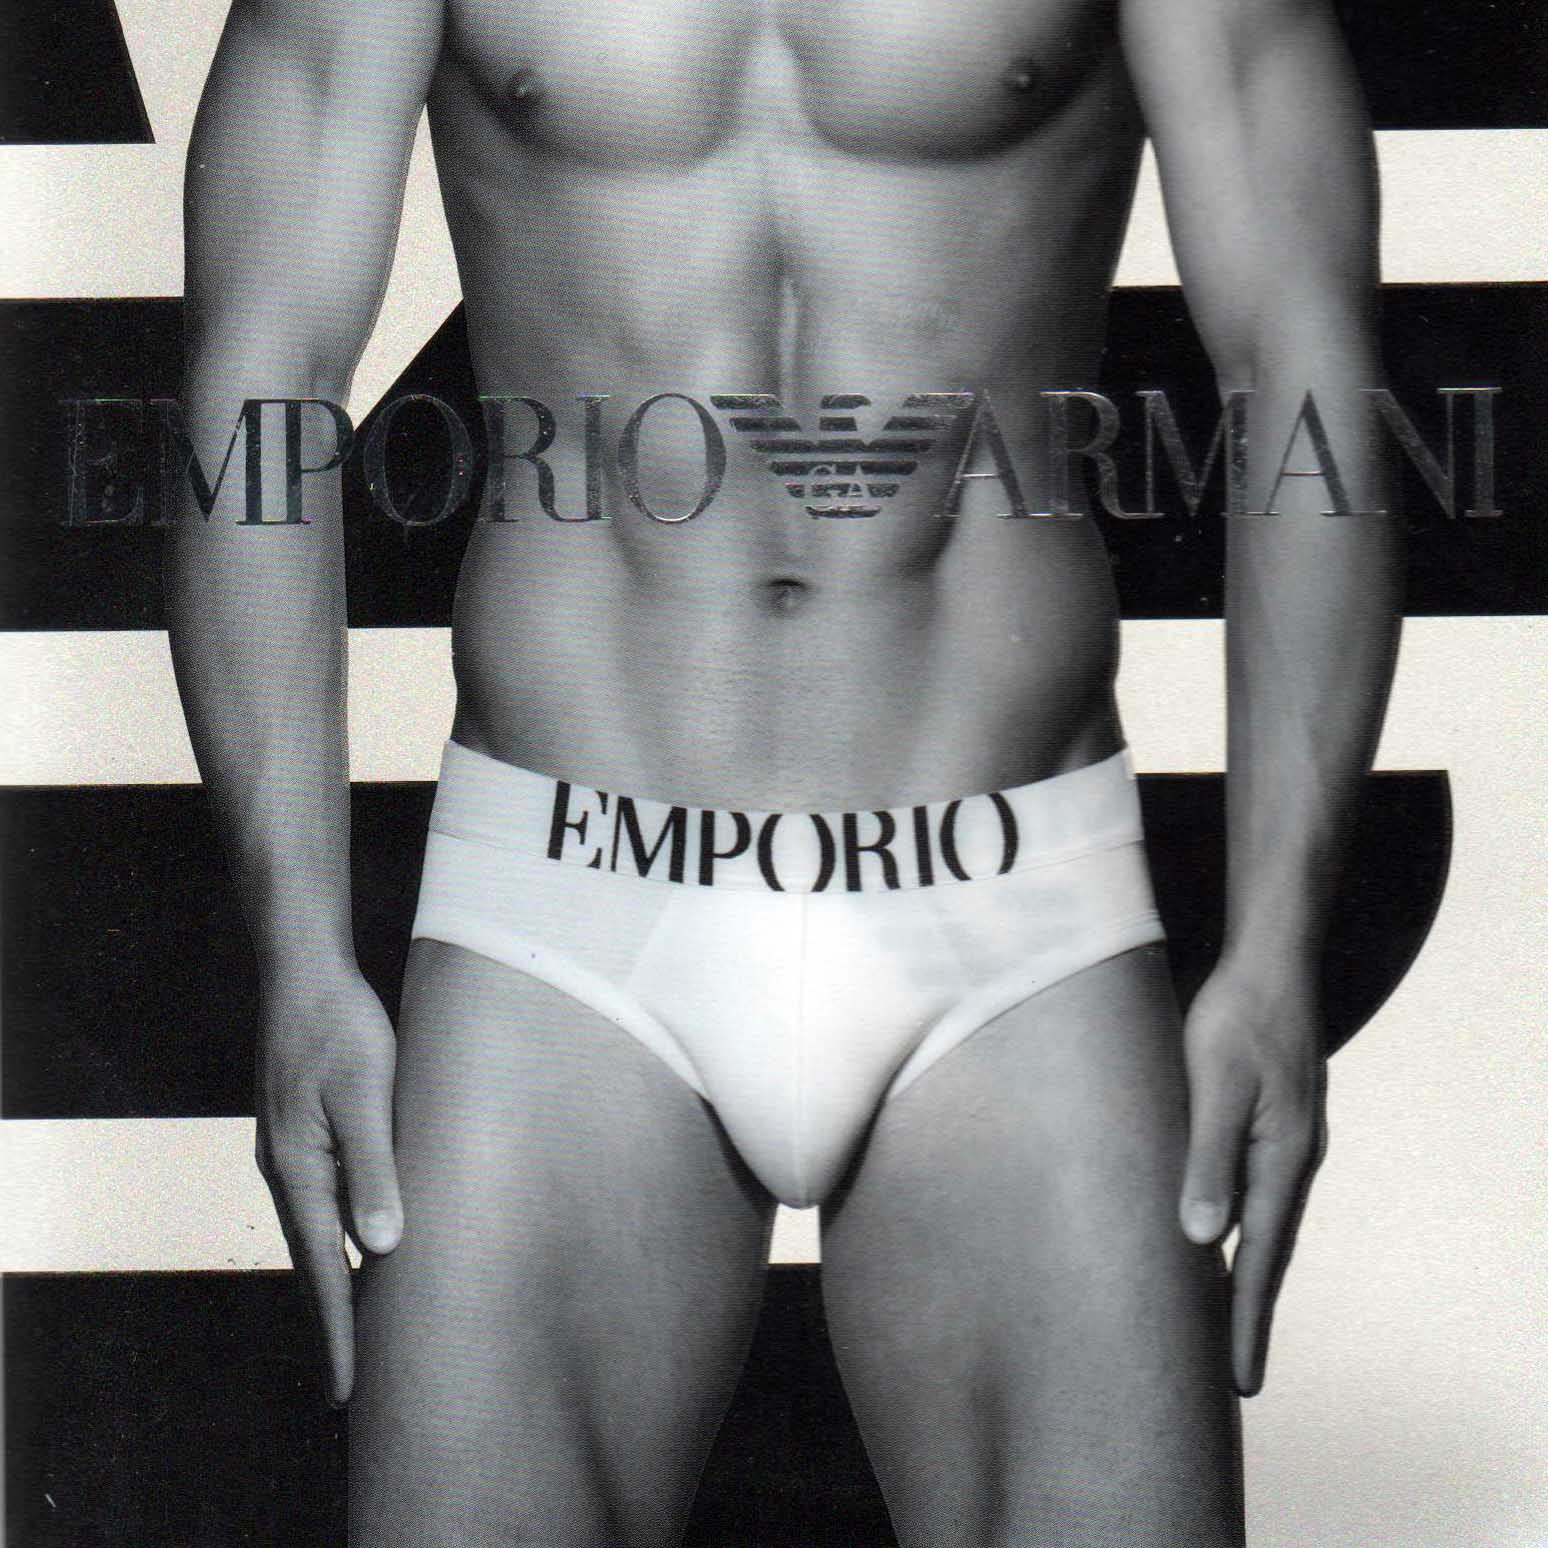 Hip Brief Emporio Armani 110814 C725